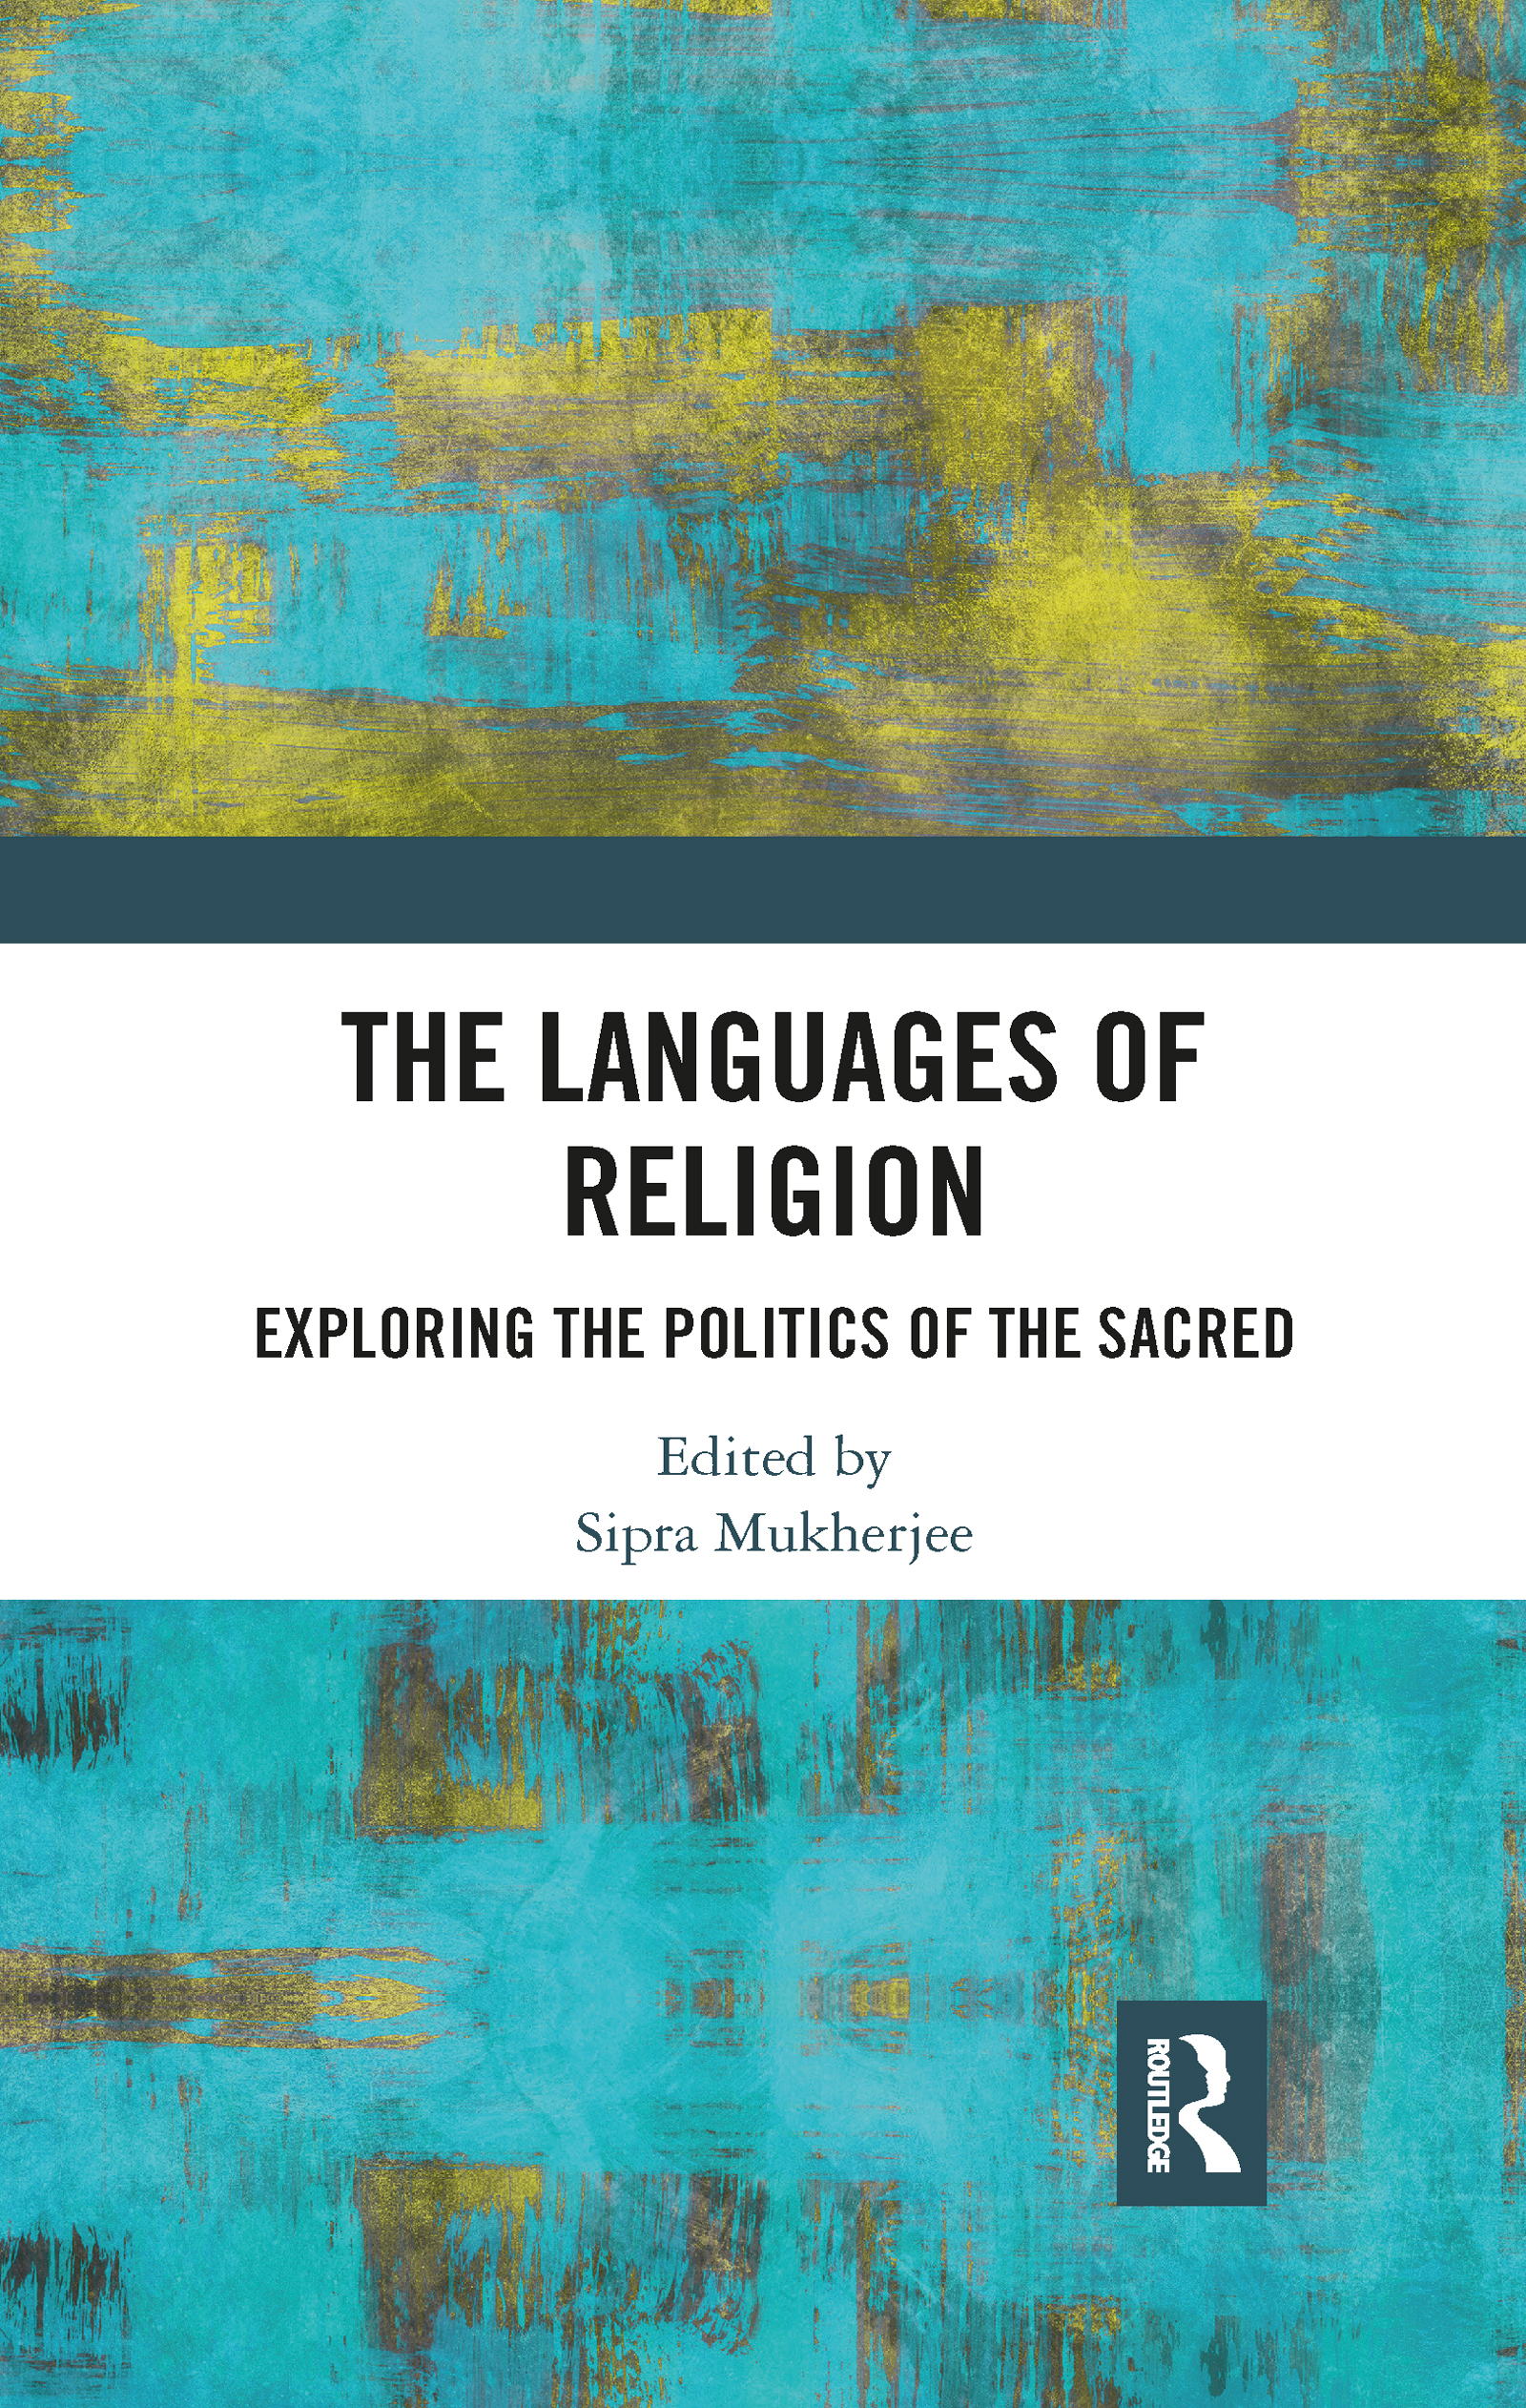 The Languages of Religion